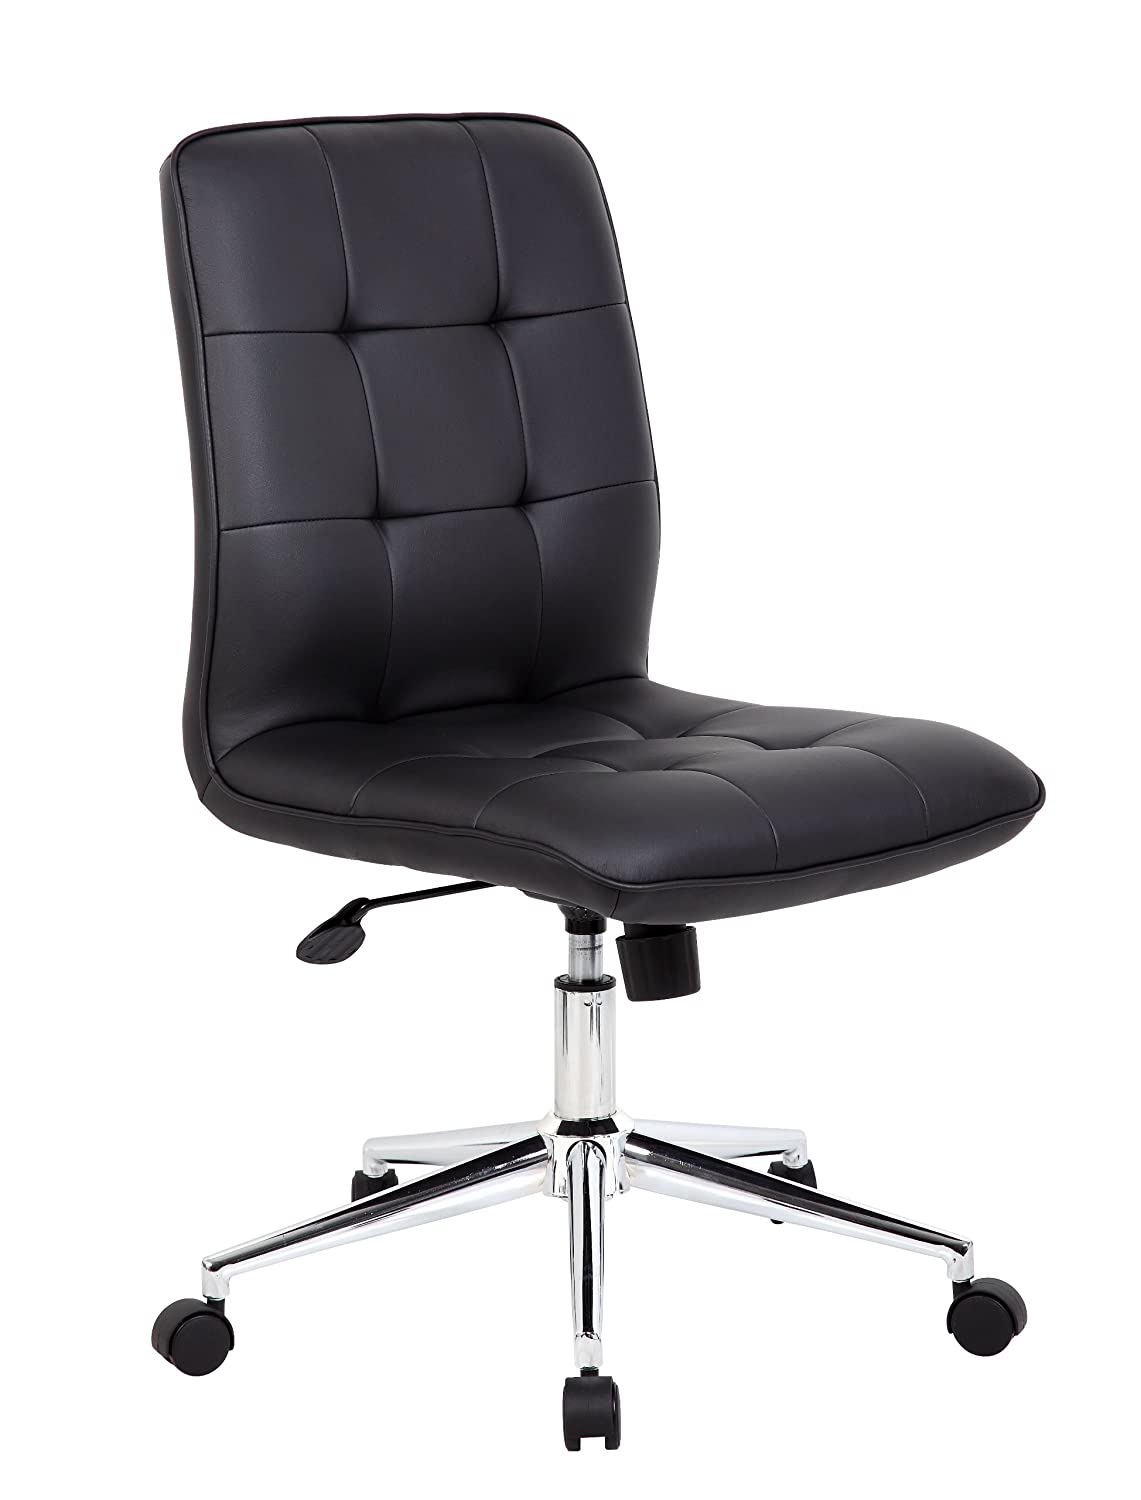 Black and white office chair - Amazon Com Boss Office Products B330 Rd Mellennial Modern Home Office Chair Without Arms In Red Kitchen Dining